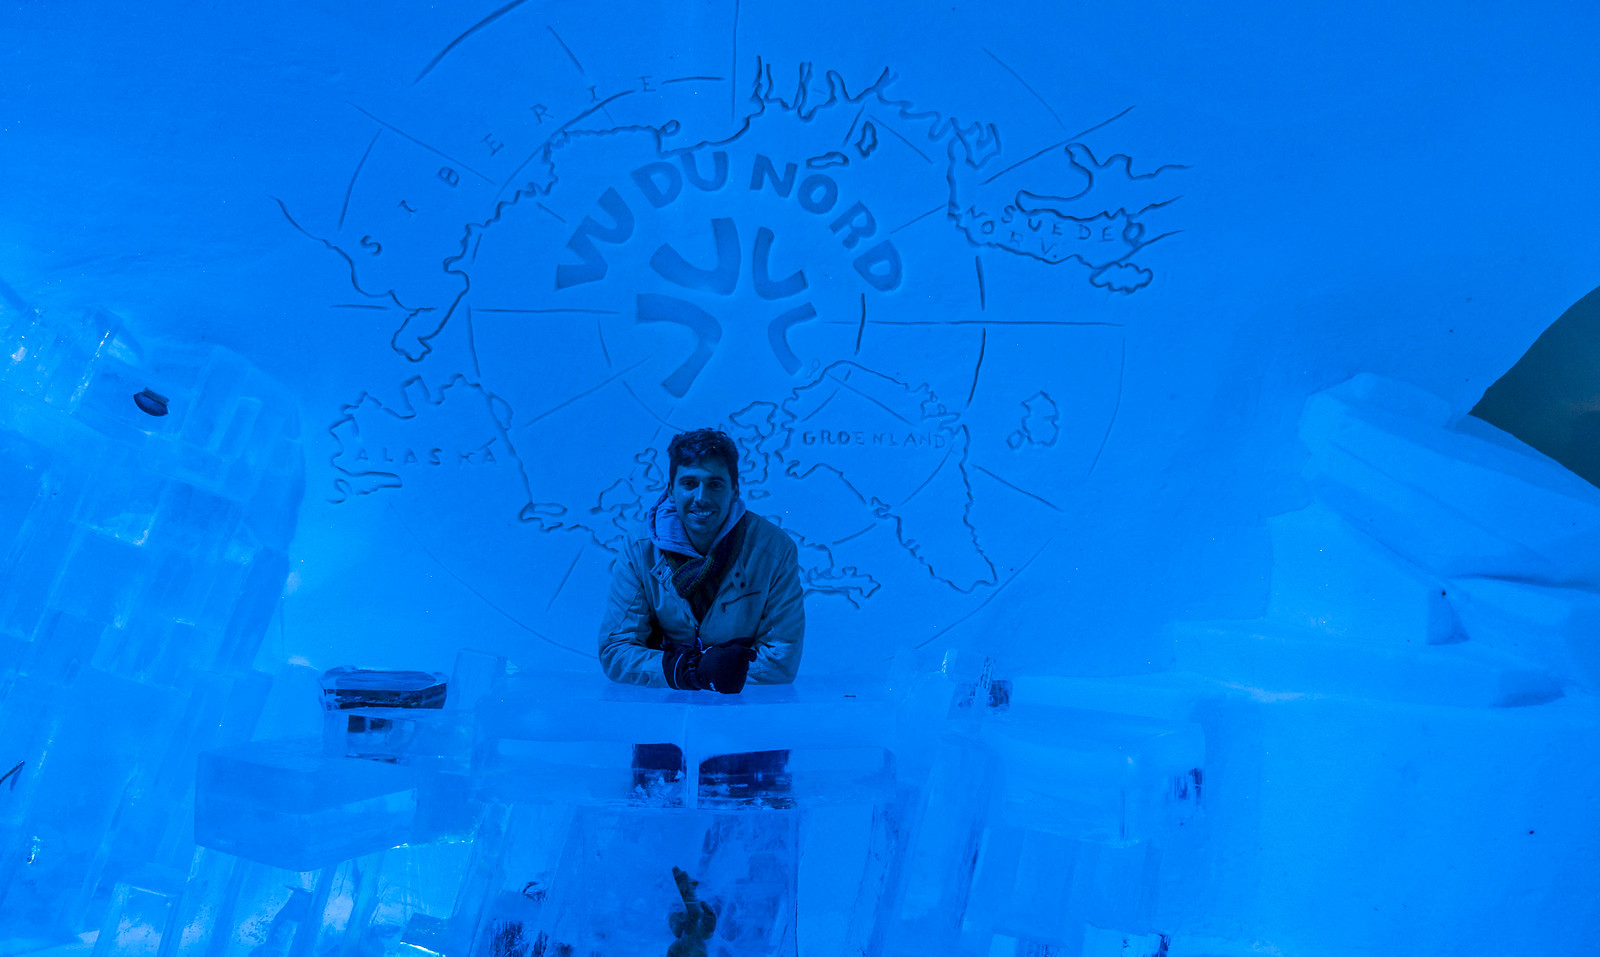 Ice Hotel Quebec: An Insider's Guide to Surviving the Night - Inside the ice hotel